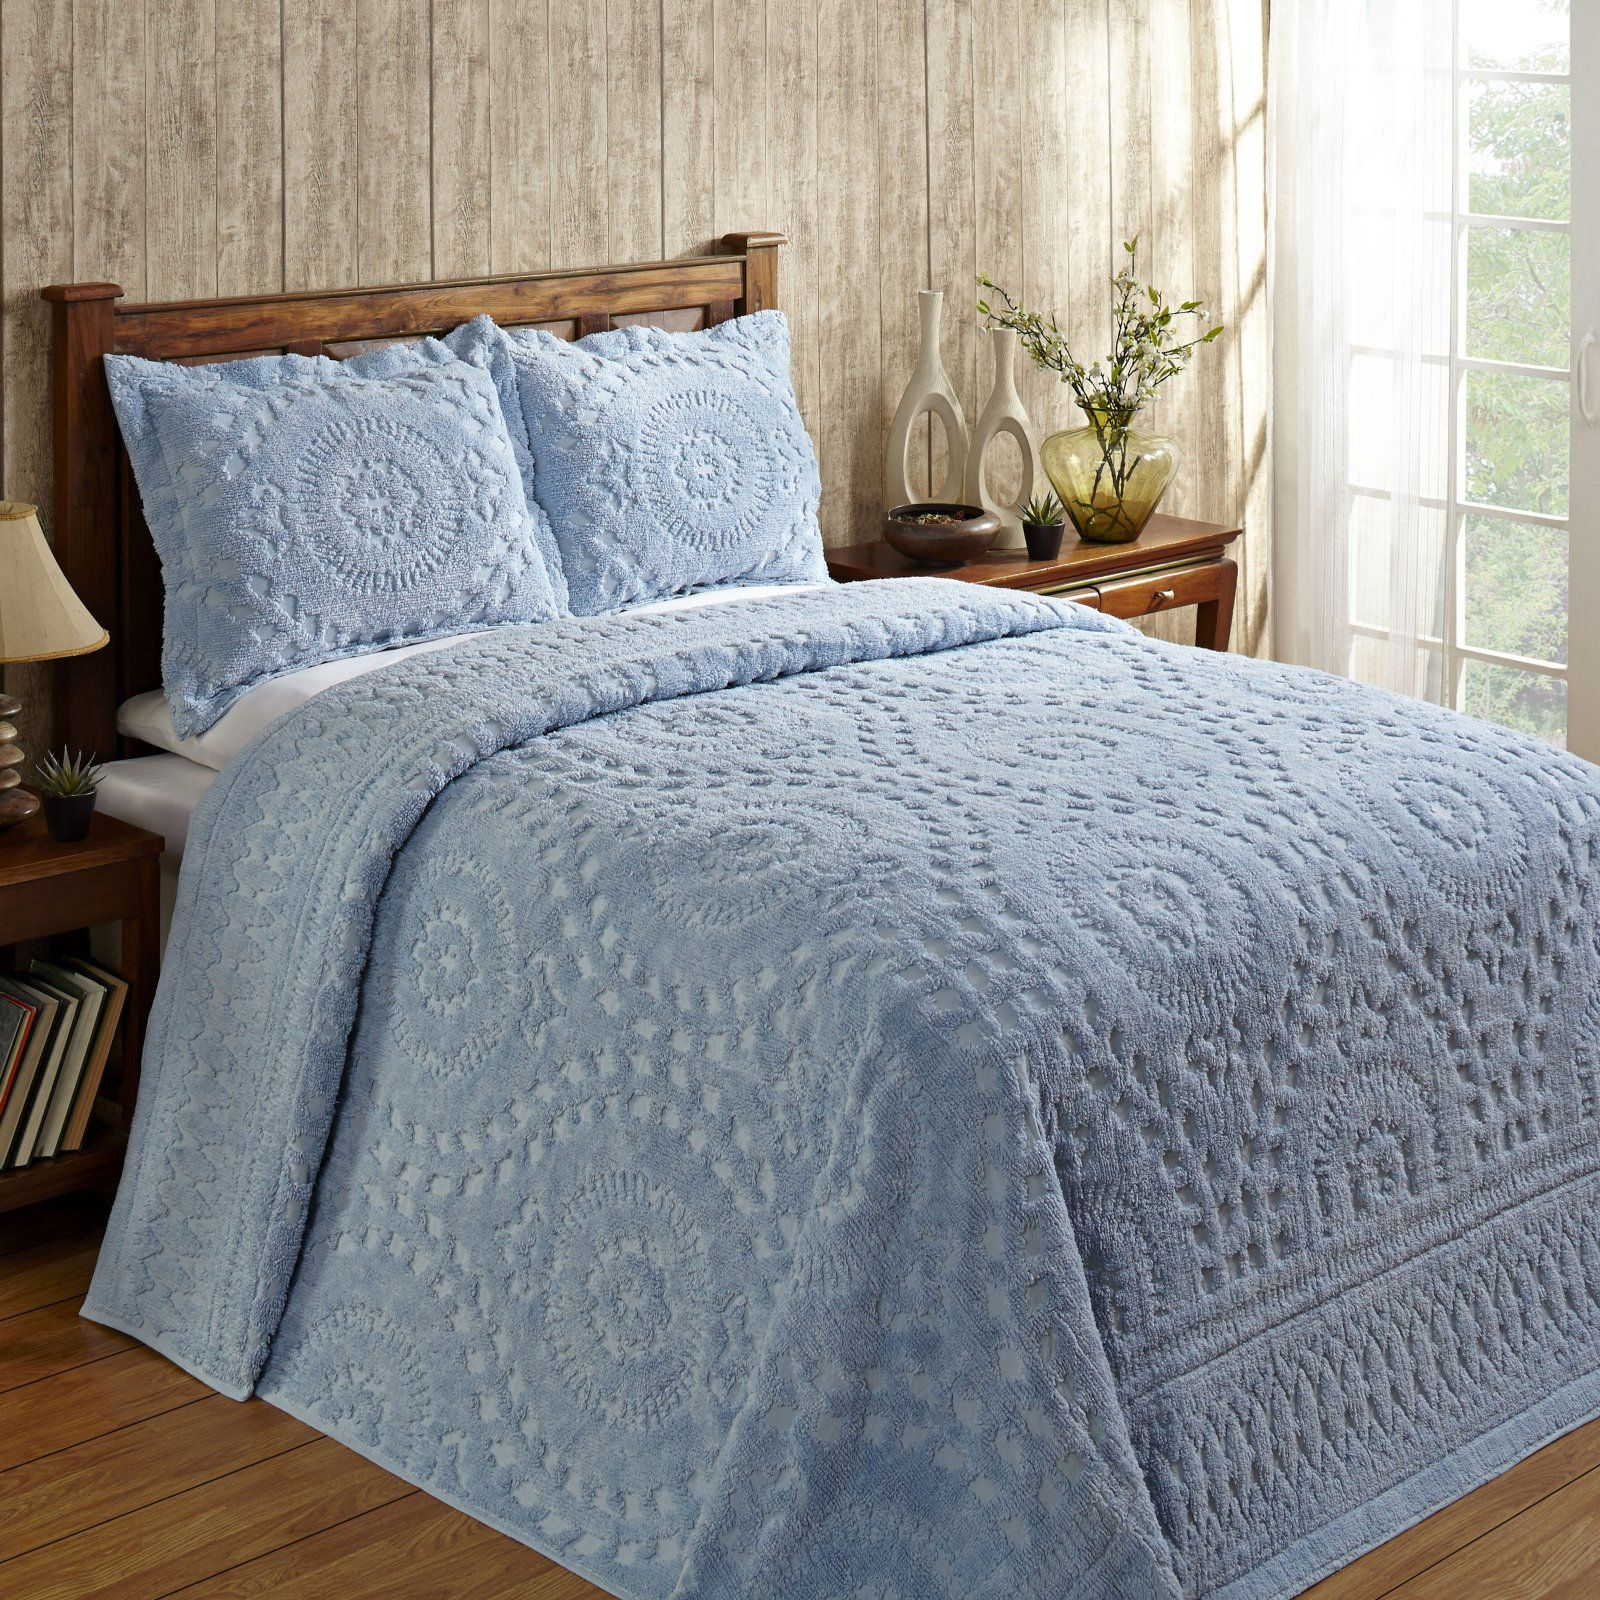 Home Bed Spreads Chenille Bedspread Bedding Master Bedroom